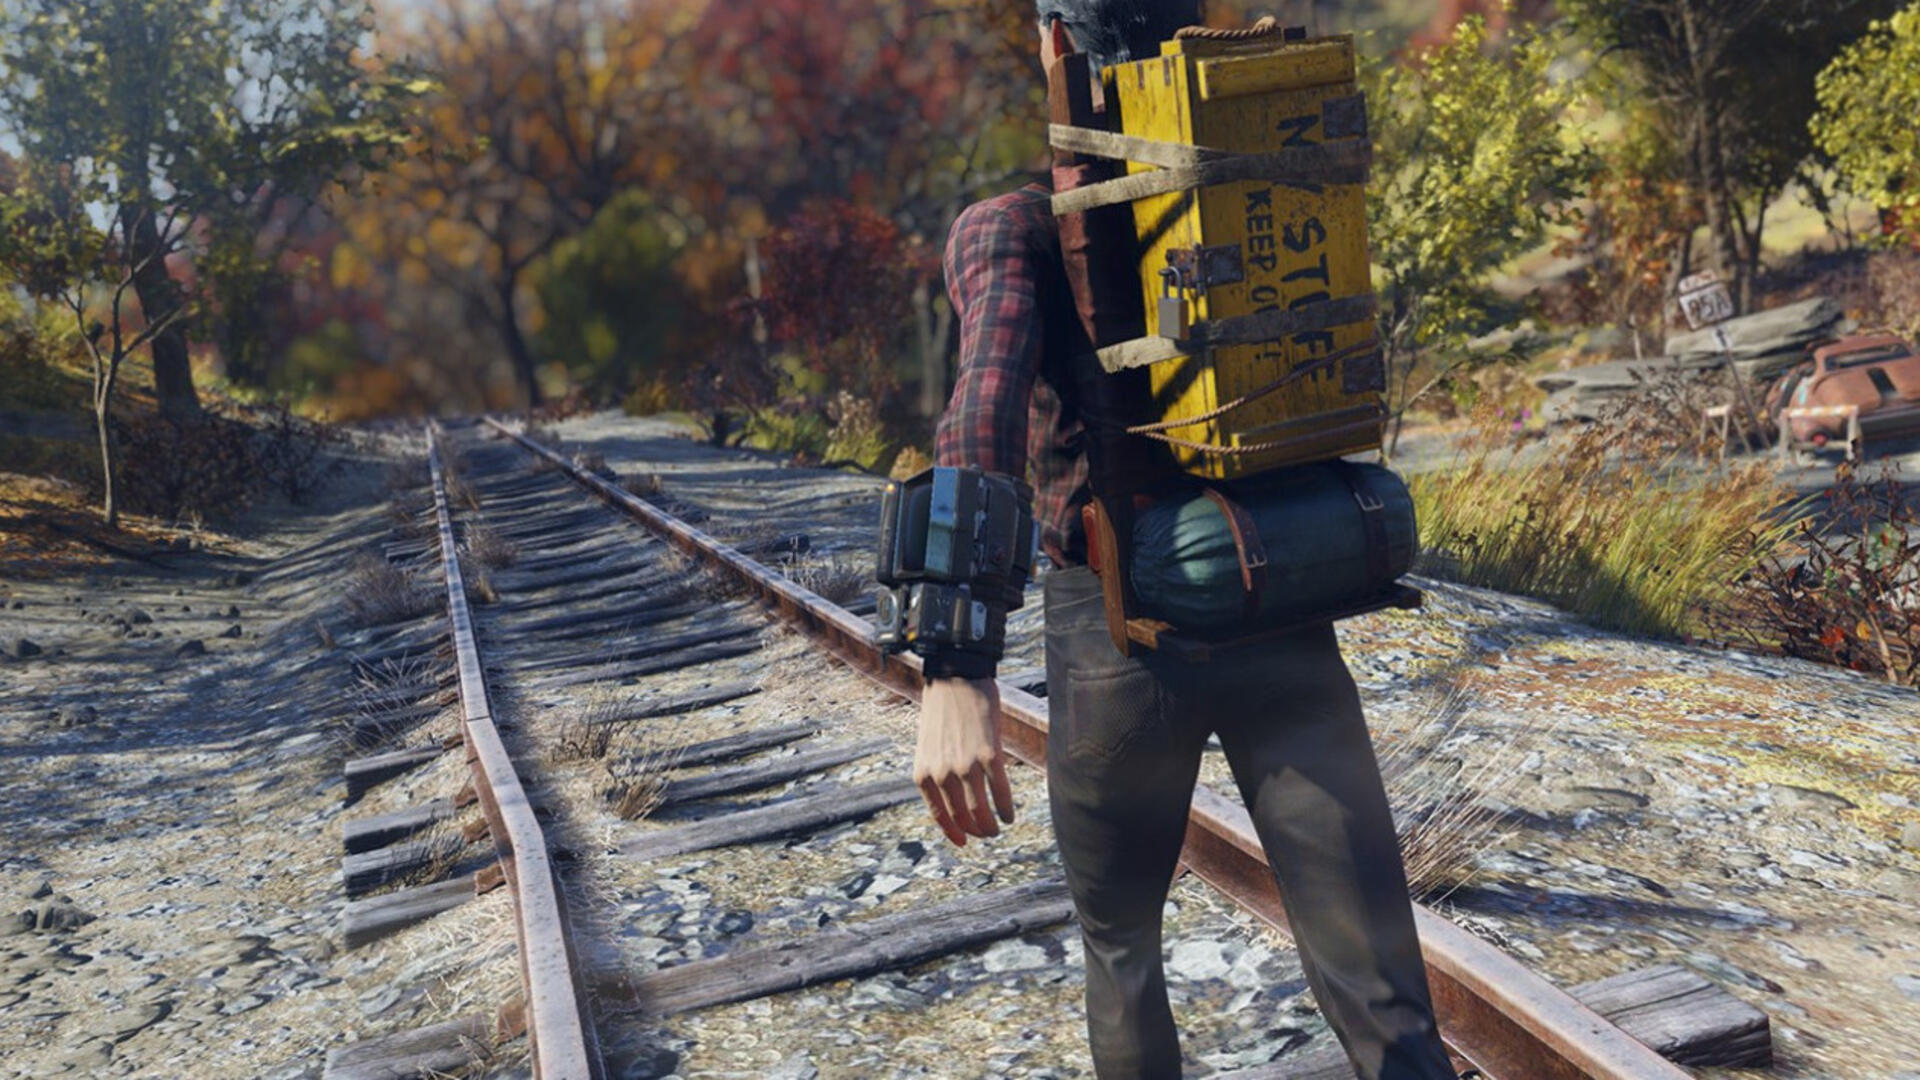 Fallout 76 Patch 9 Update Adds New Ways to Earn Bottle Caps and Legendary Items